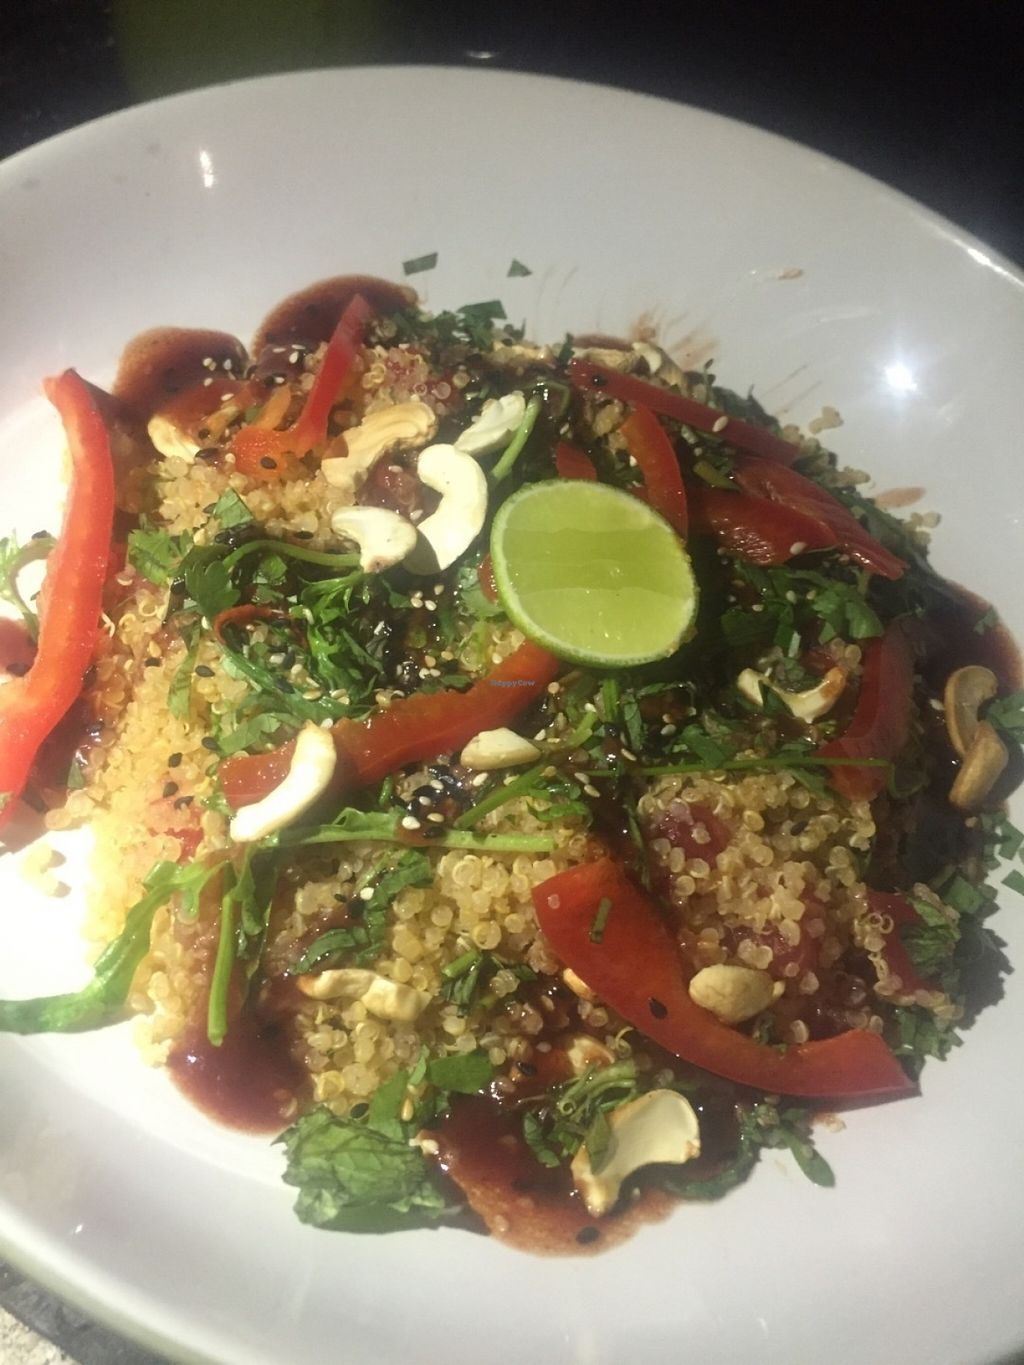 """Photo of Mowie's   by <a href=""""/members/profile/rodgo"""">rodgo</a> <br/>Quinoa salad  <br/> July 18, 2016  - <a href='/contact/abuse/image/76717/160576'>Report</a>"""